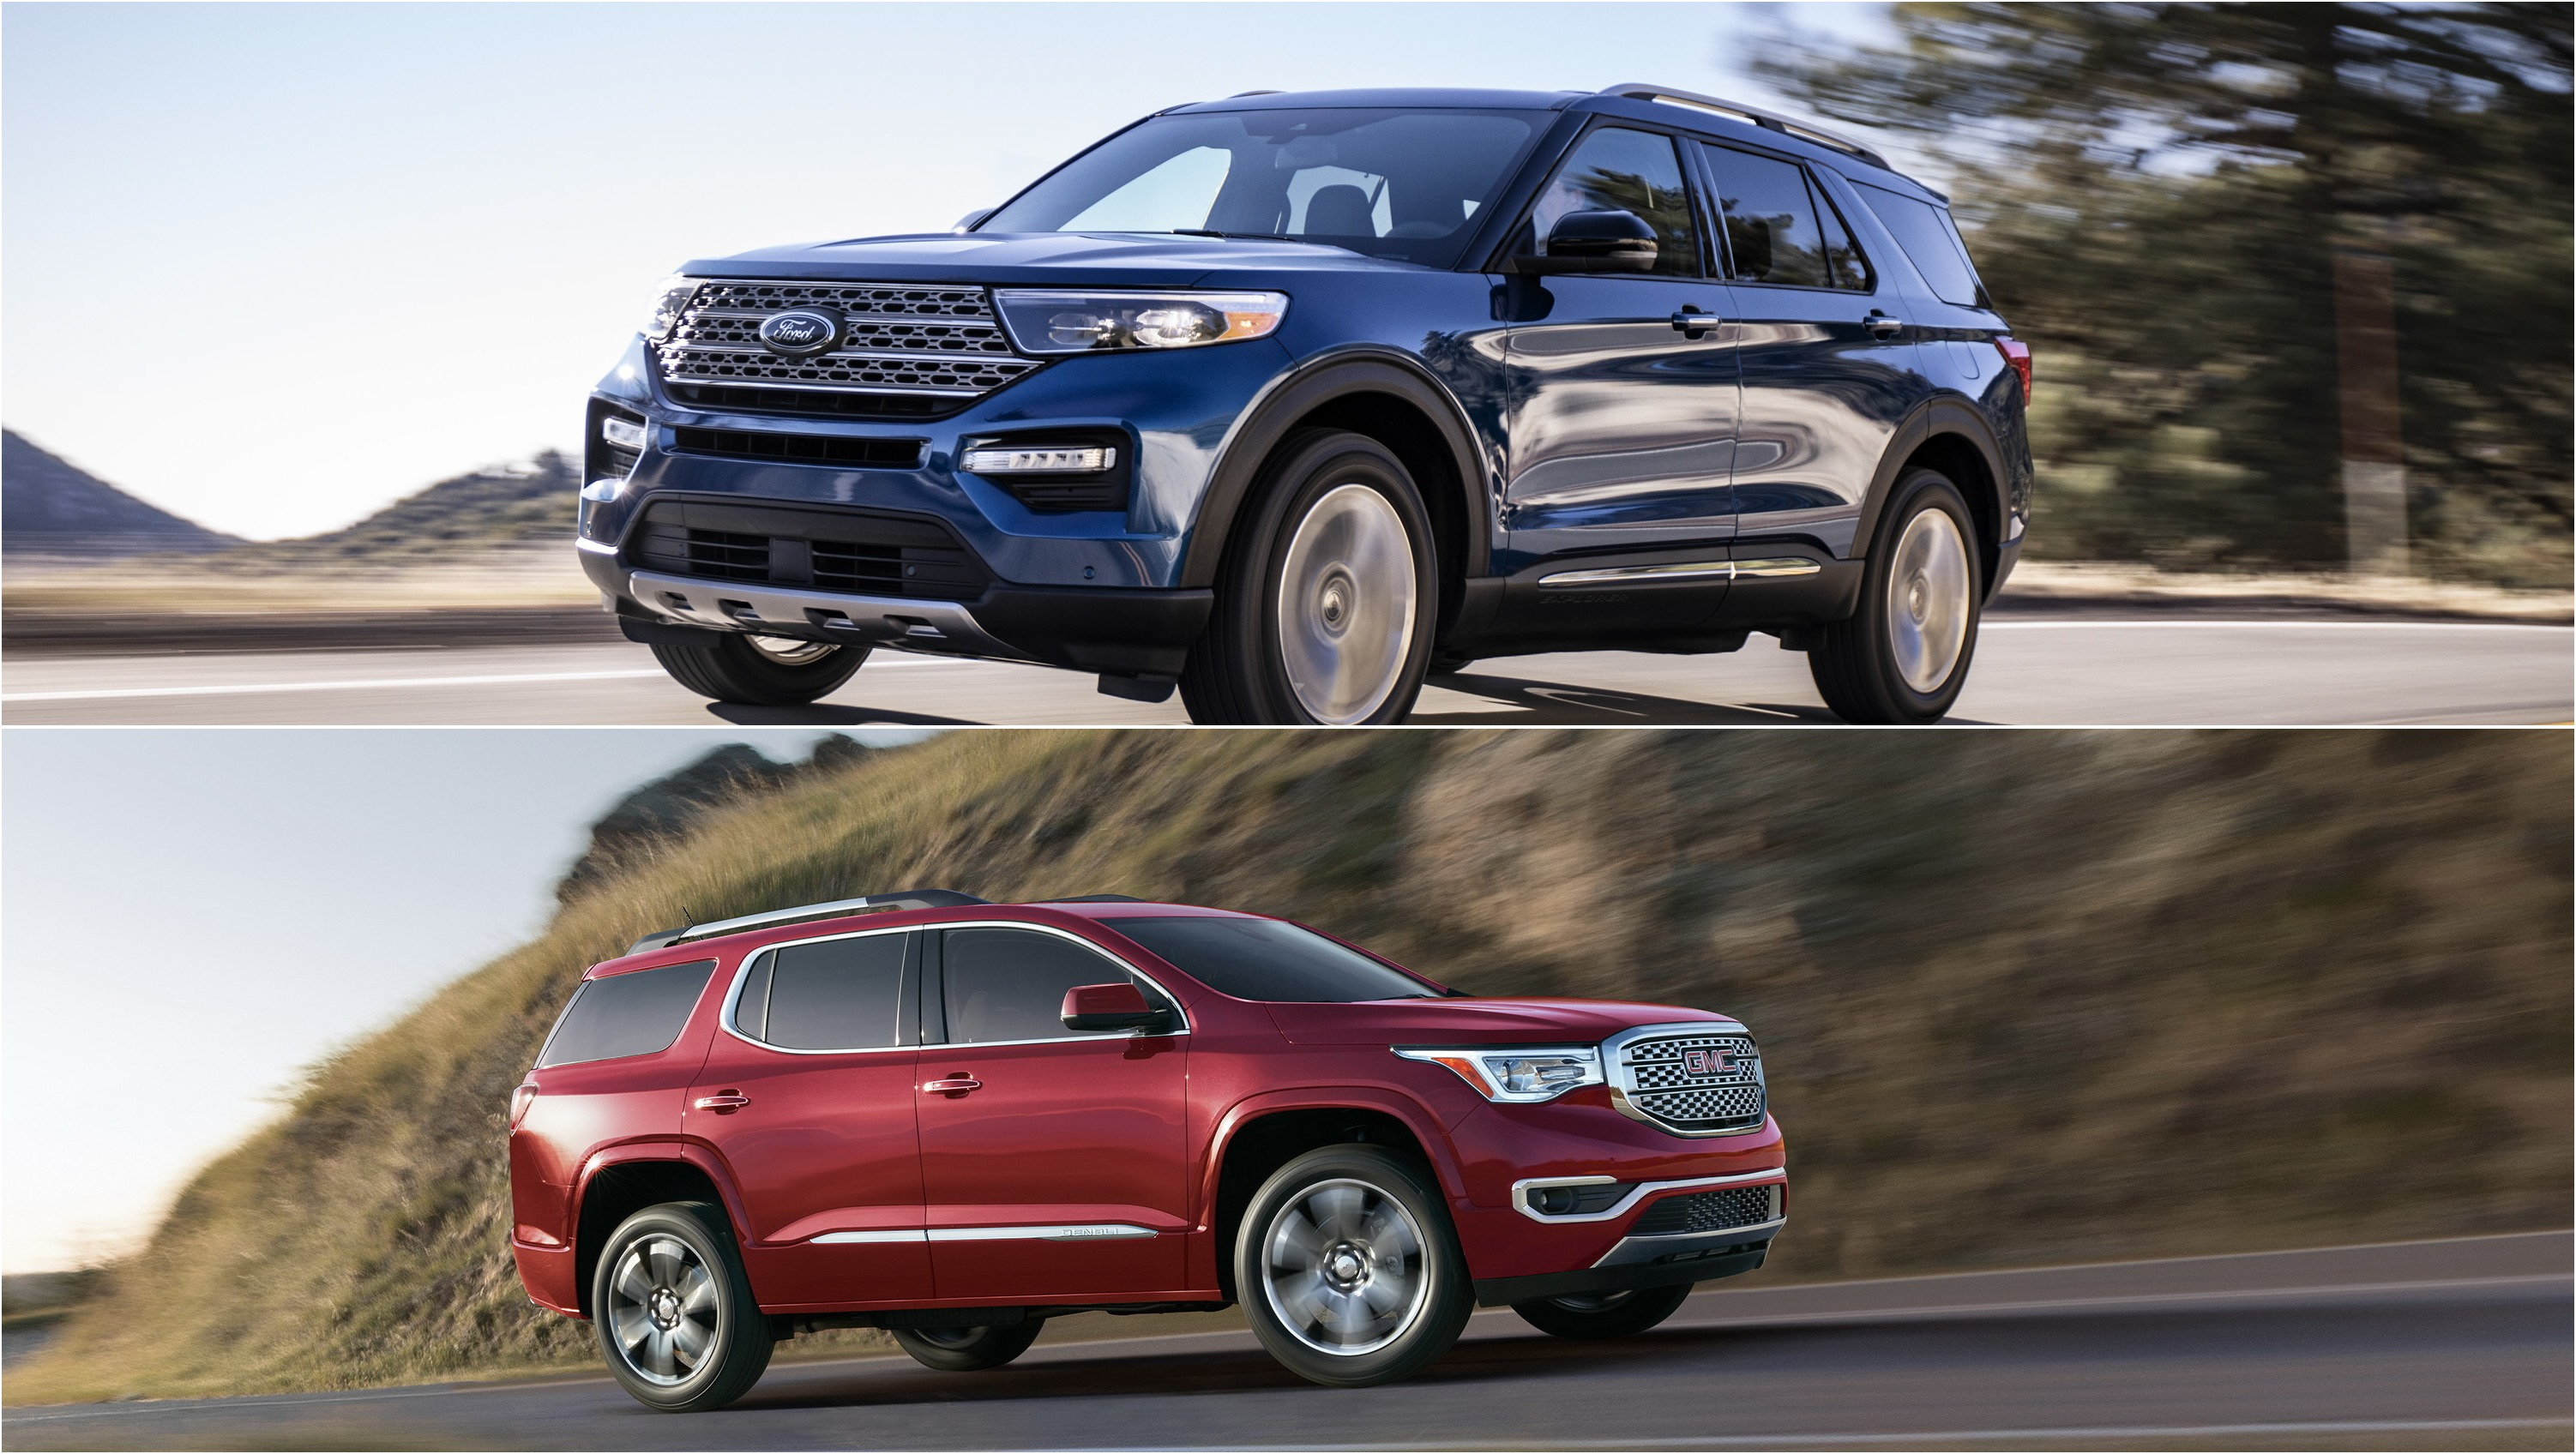 Subaru Vs Honda >> 2020 Ford Explorer Vs 2019 GMC Acadia: How They Compare Pictures, Photos, Wallpapers. | Top Speed